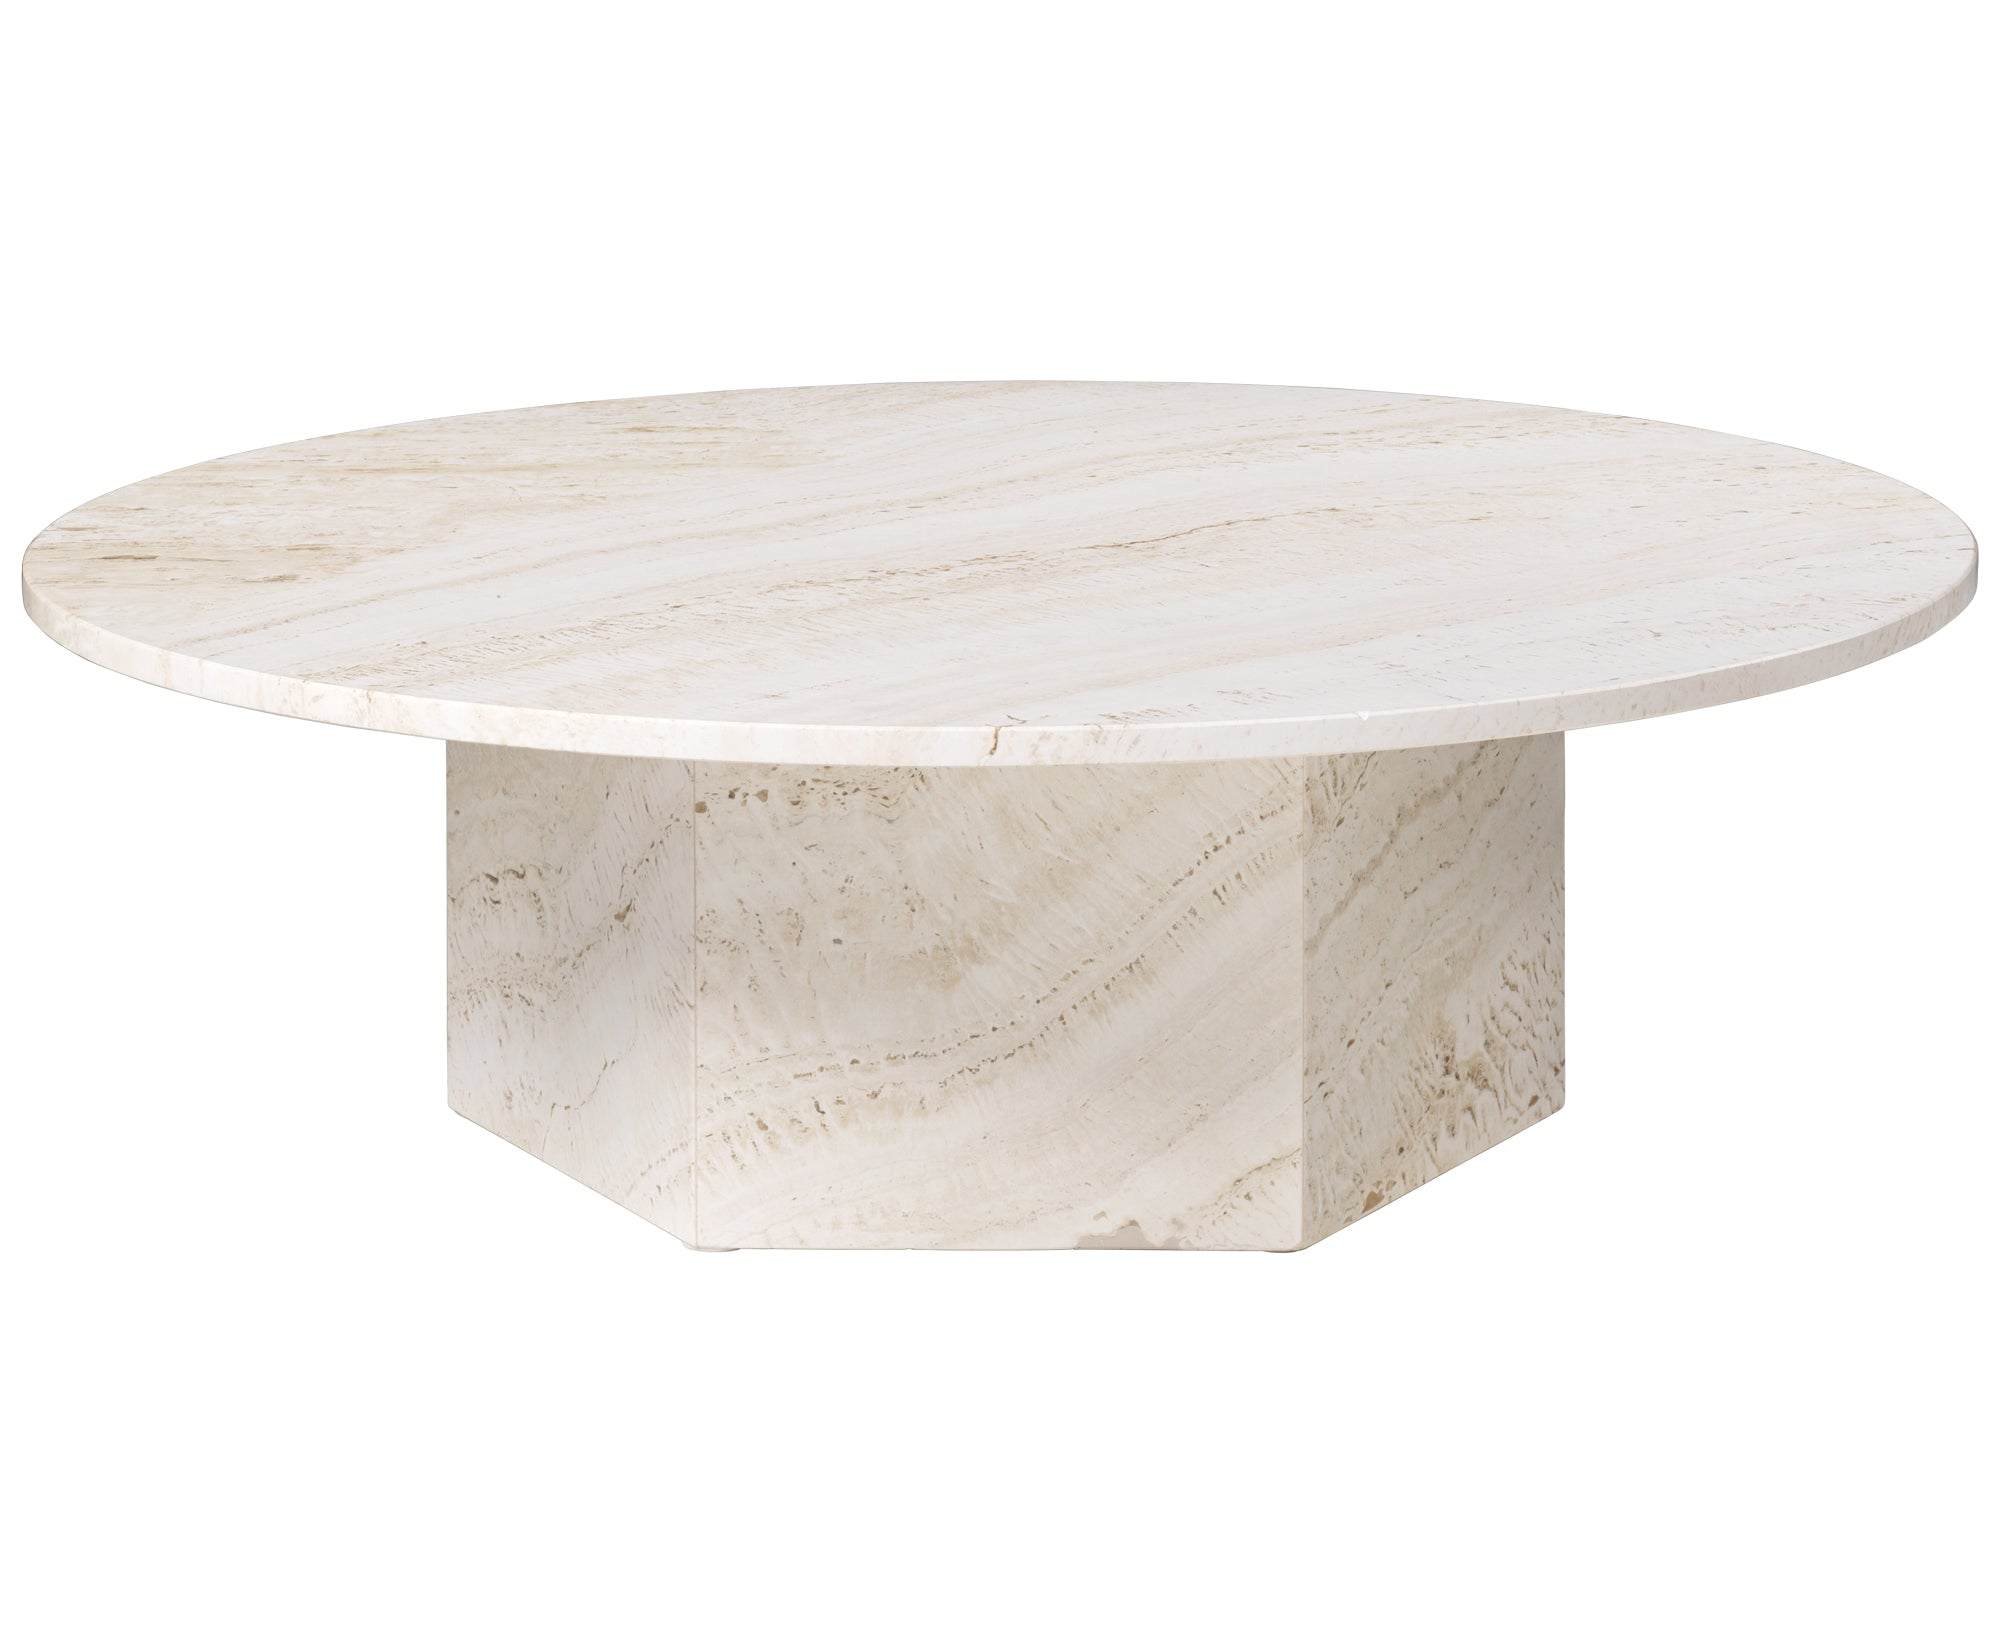 Epic Coffee Table - Round Ø110